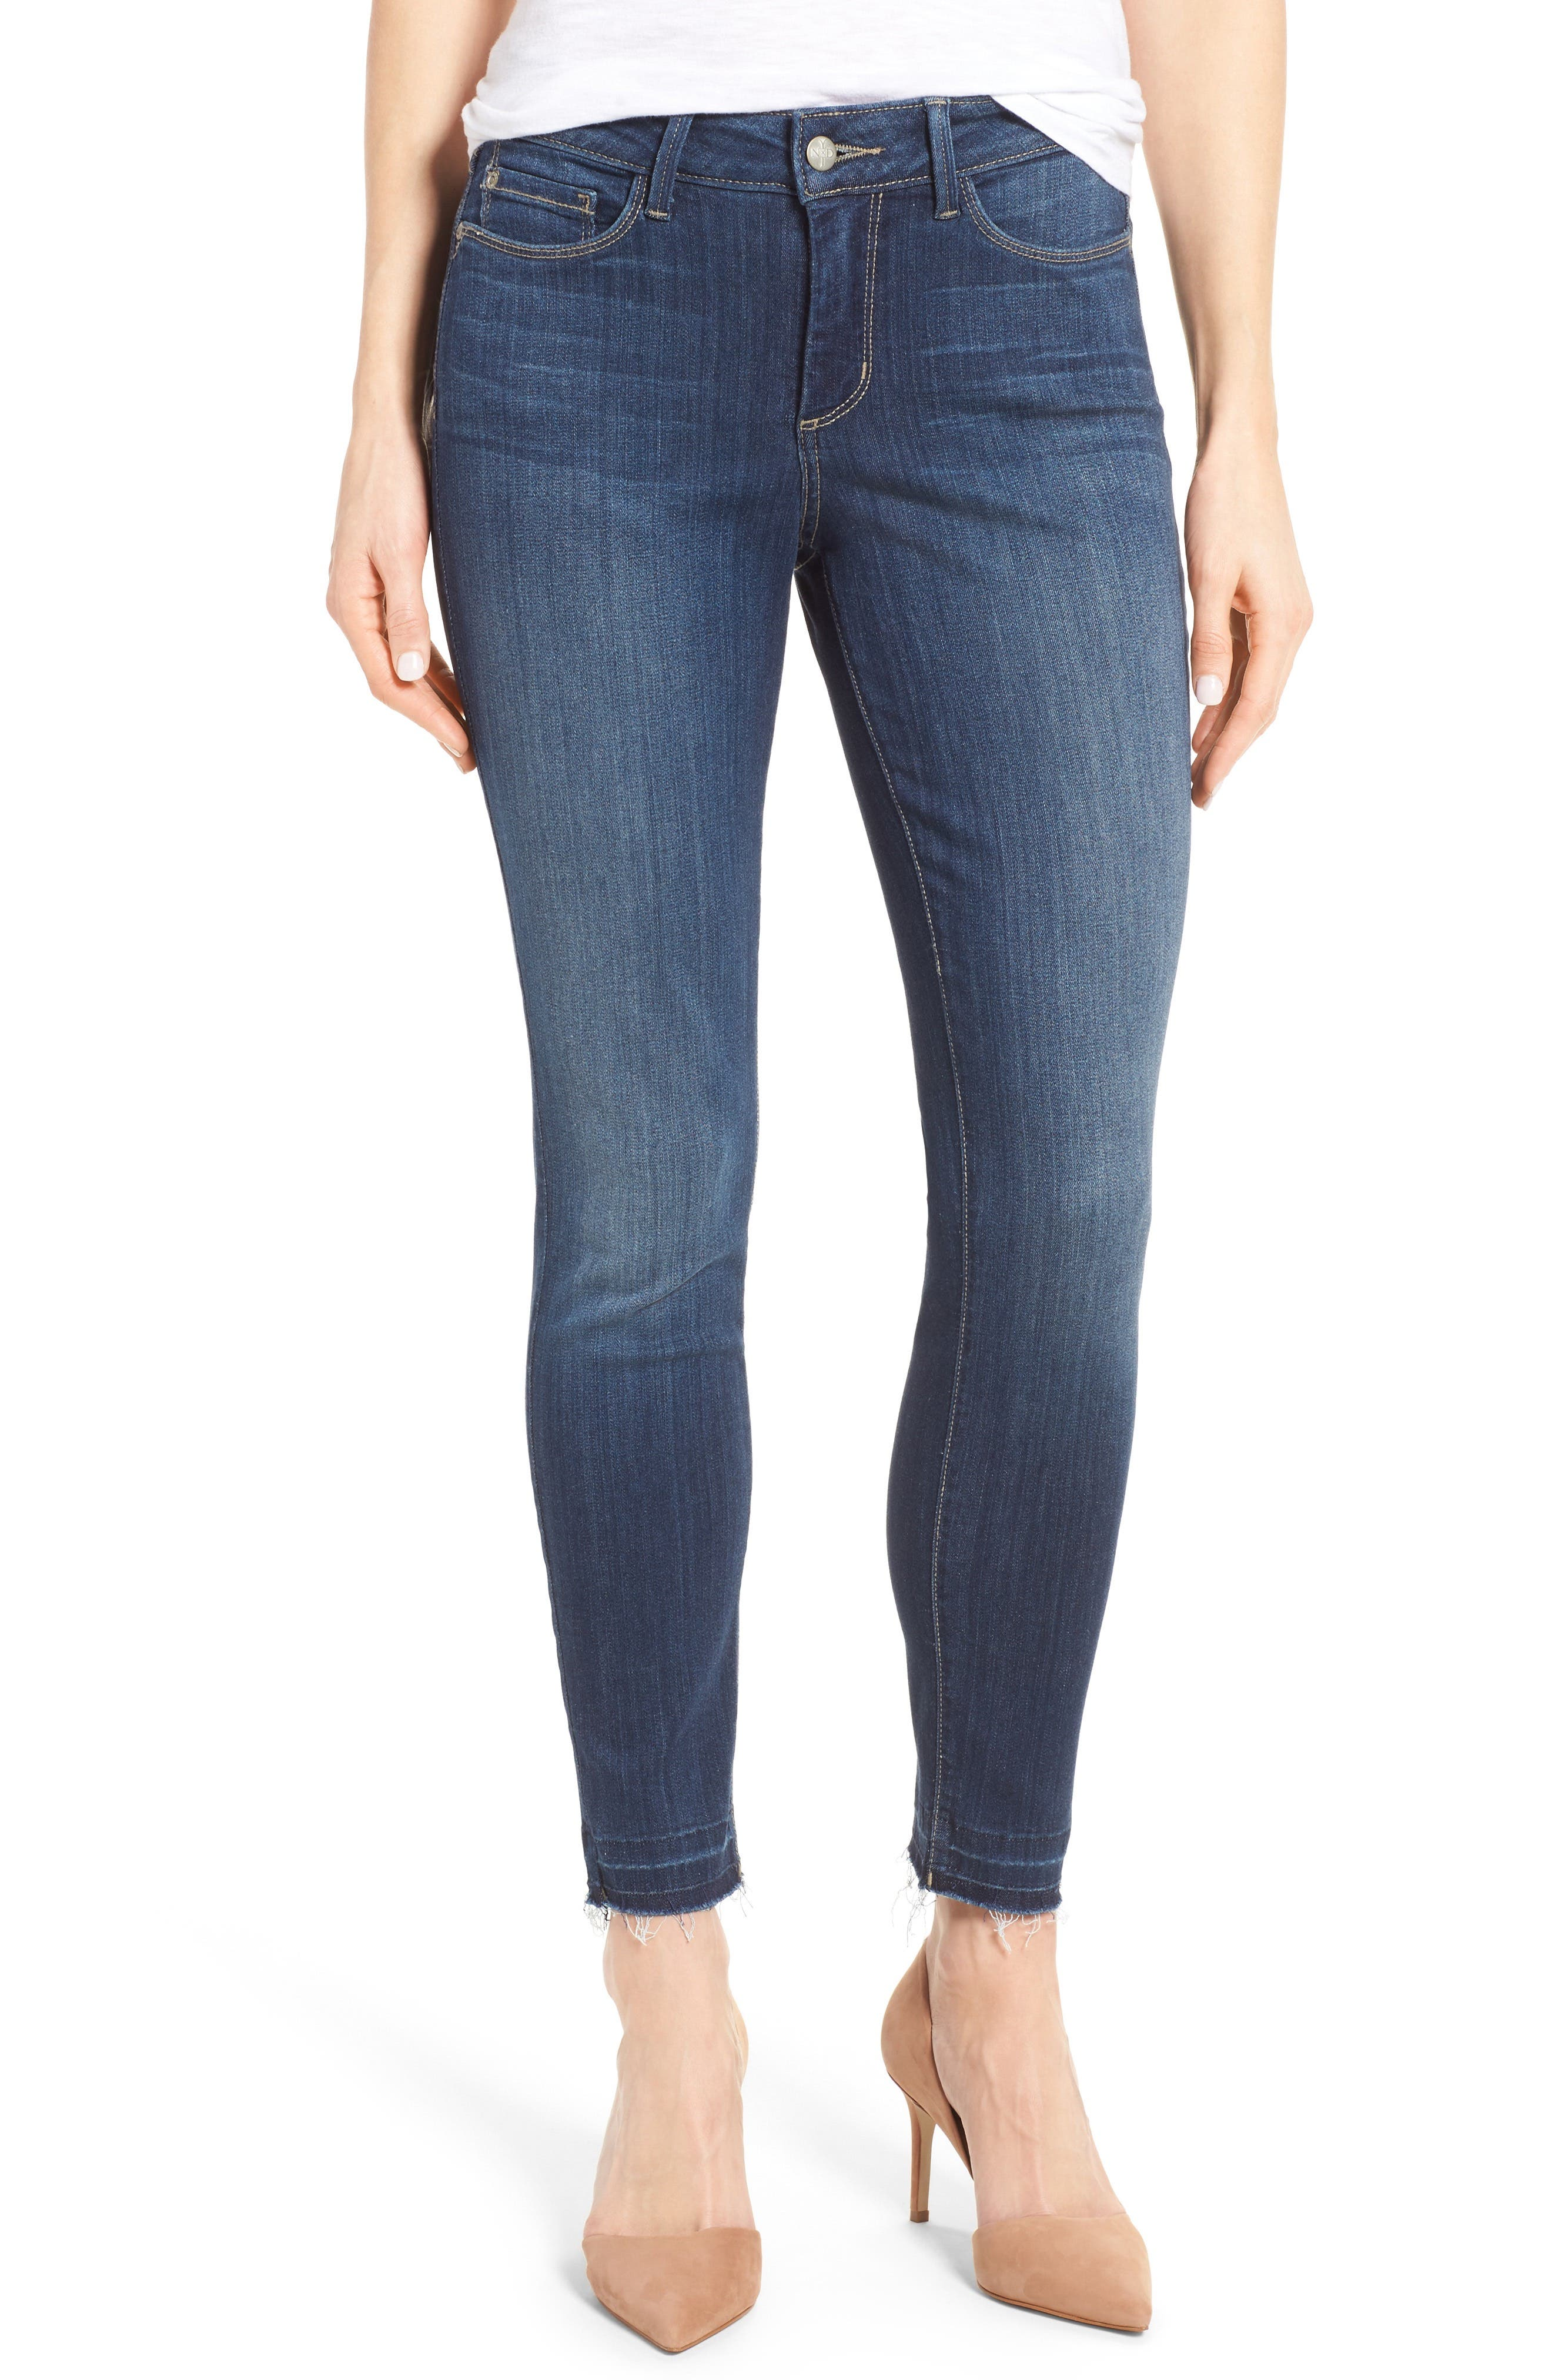 Ami Release Hem Stretch Skinny Jeans,                             Main thumbnail 1, color,                             428